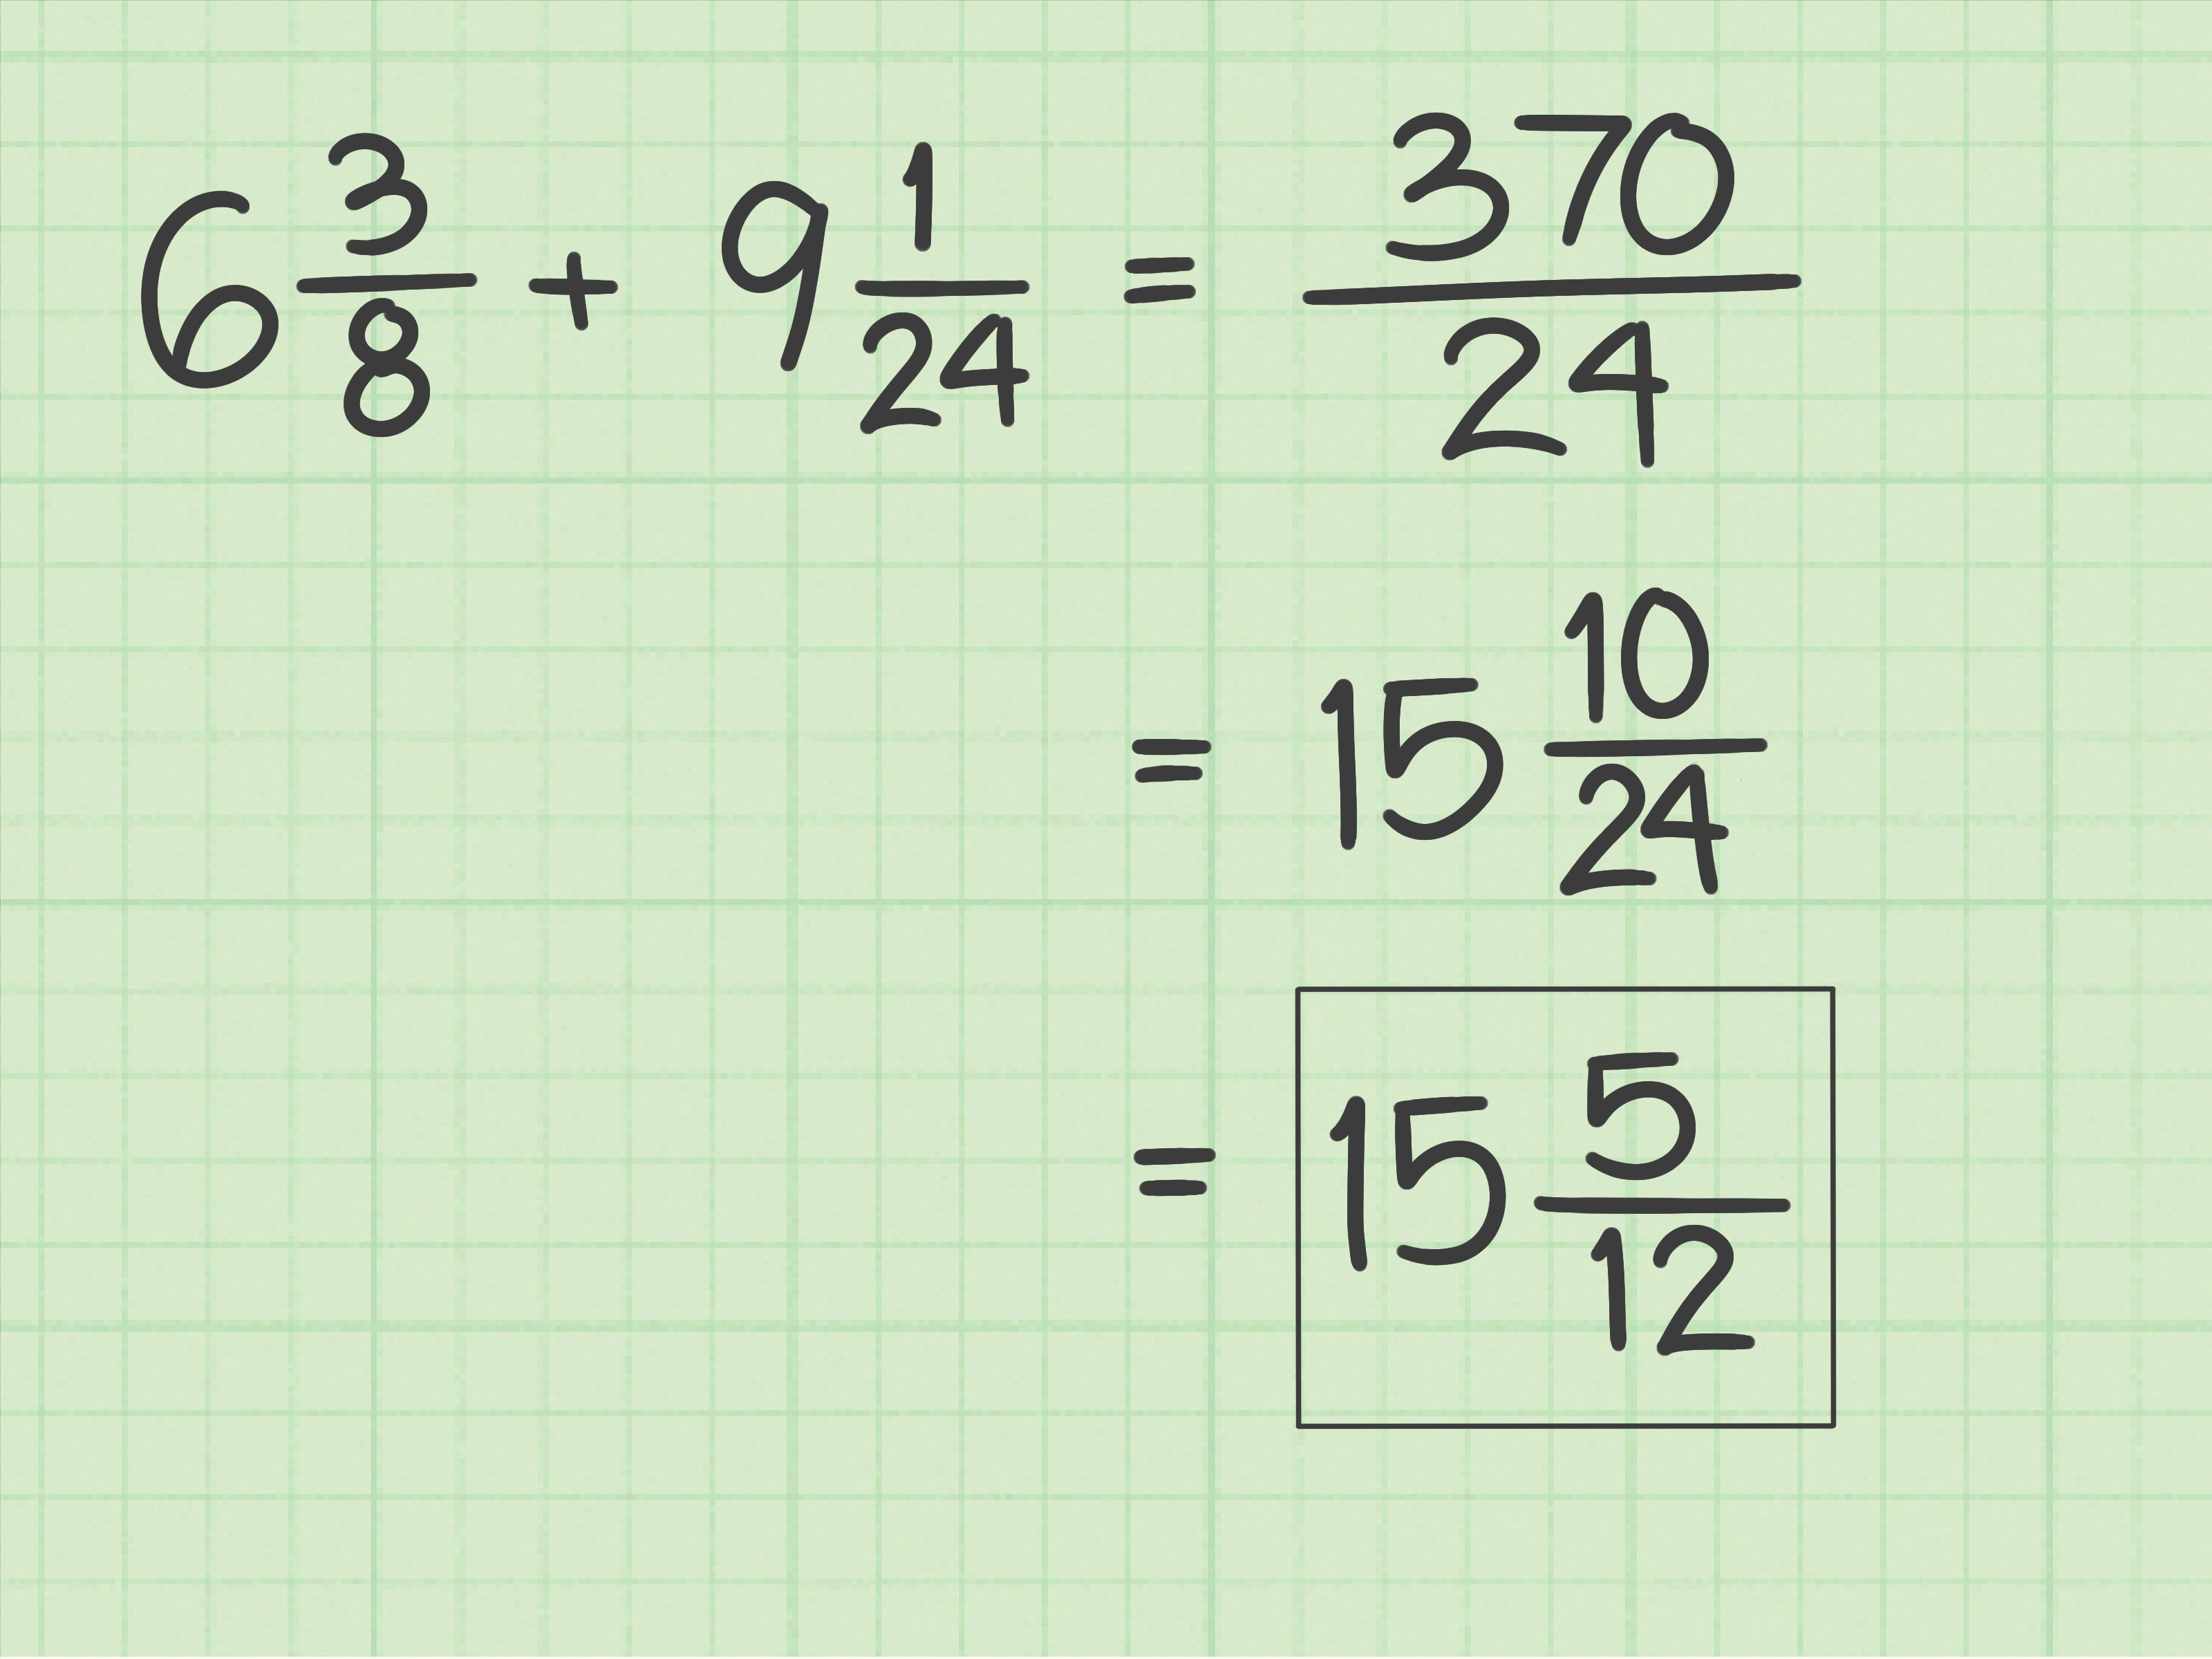 Worksheet On Addition And Subtraction Of Fractions With